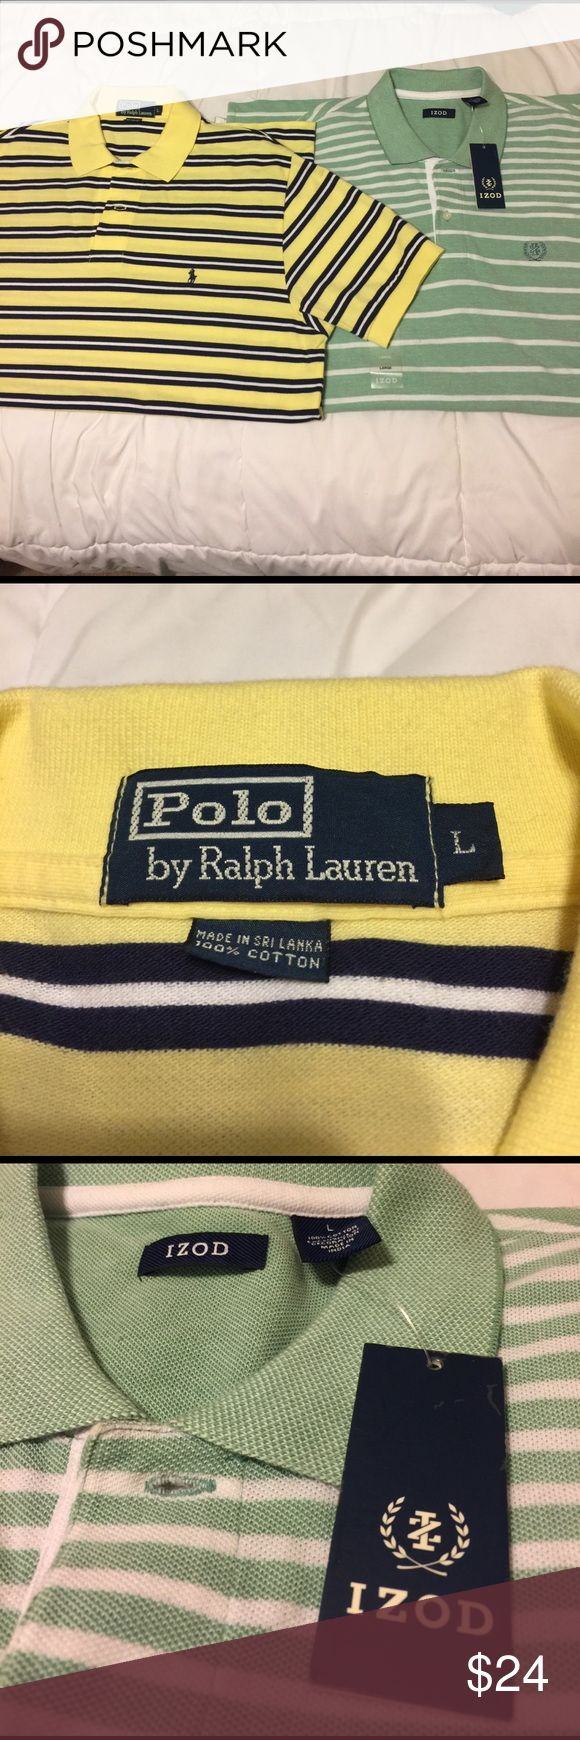 "Pair of Large polo shirts! Superb condition. Pair of Large polo shirts! First one is a ""Polo by Ralph Lauren"" polo that is light yellow with navy and white horizontal stripes. In pristine condition. Second is a ""Izod"" polo NWT near been worn that is seaside green with horizontal white stripes in excellent/mint condition. Get both of them now. Two amazing brands that make the best polo shirts for guys. Try them out for cheaper than regular price. Polo by Ralph Lauren Shirts Polos"